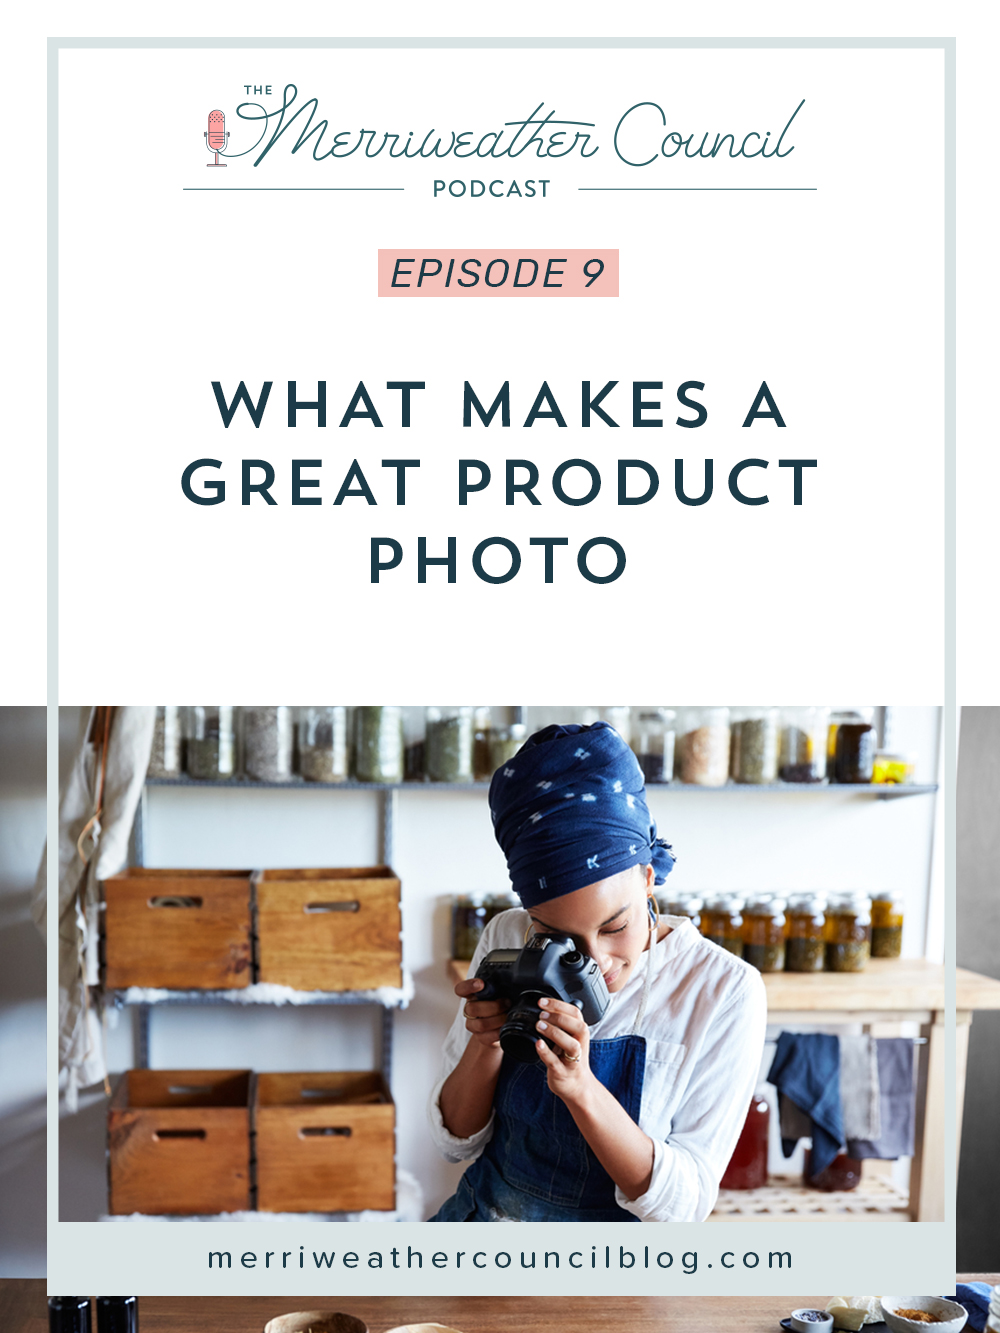 Episode 009: What Makes a Great Product Photo | the merriweather council podcast